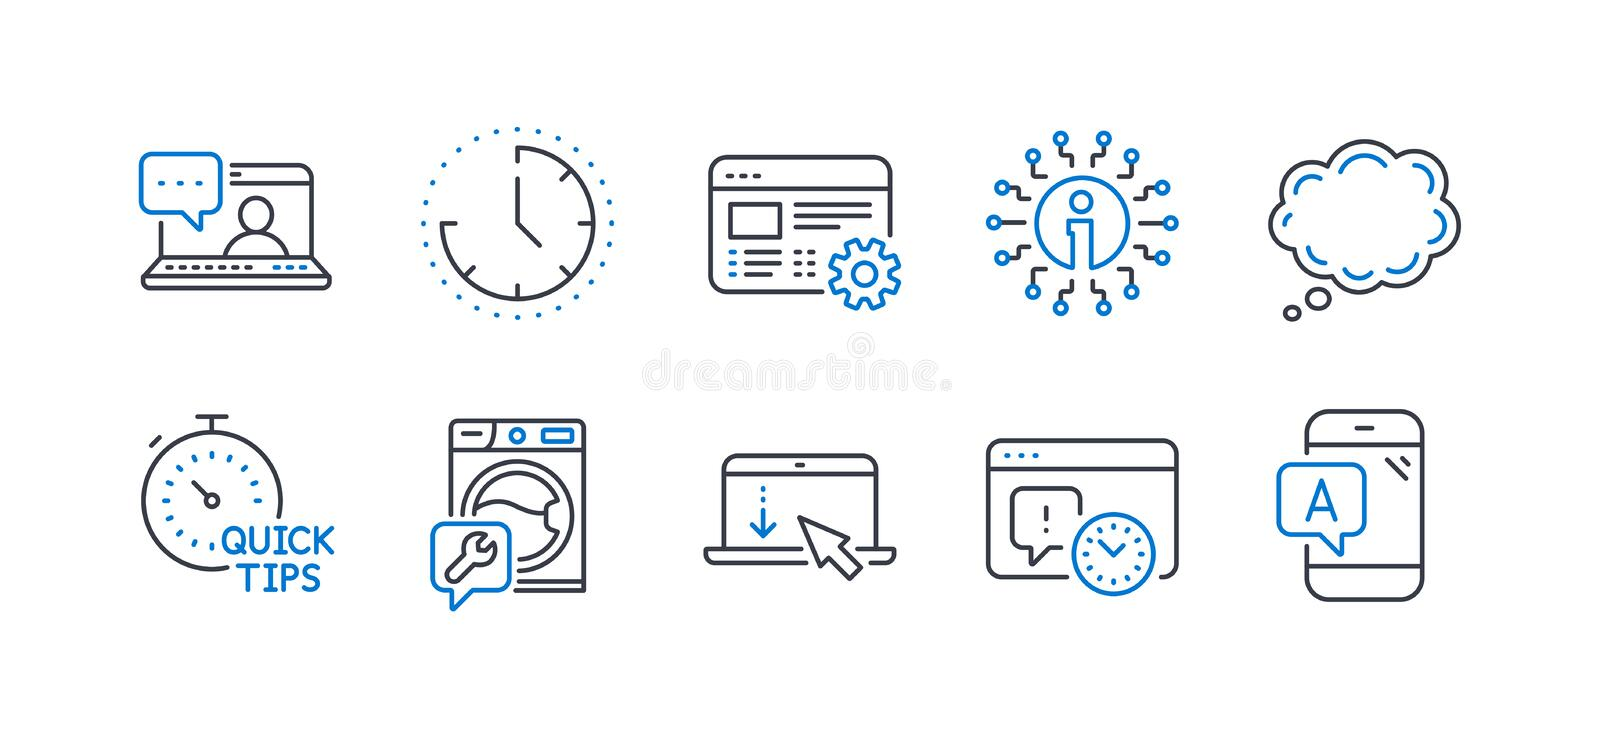 Set of Technology icons, such as Washing machine, Comic message, Scroll down 矢量 向量例证